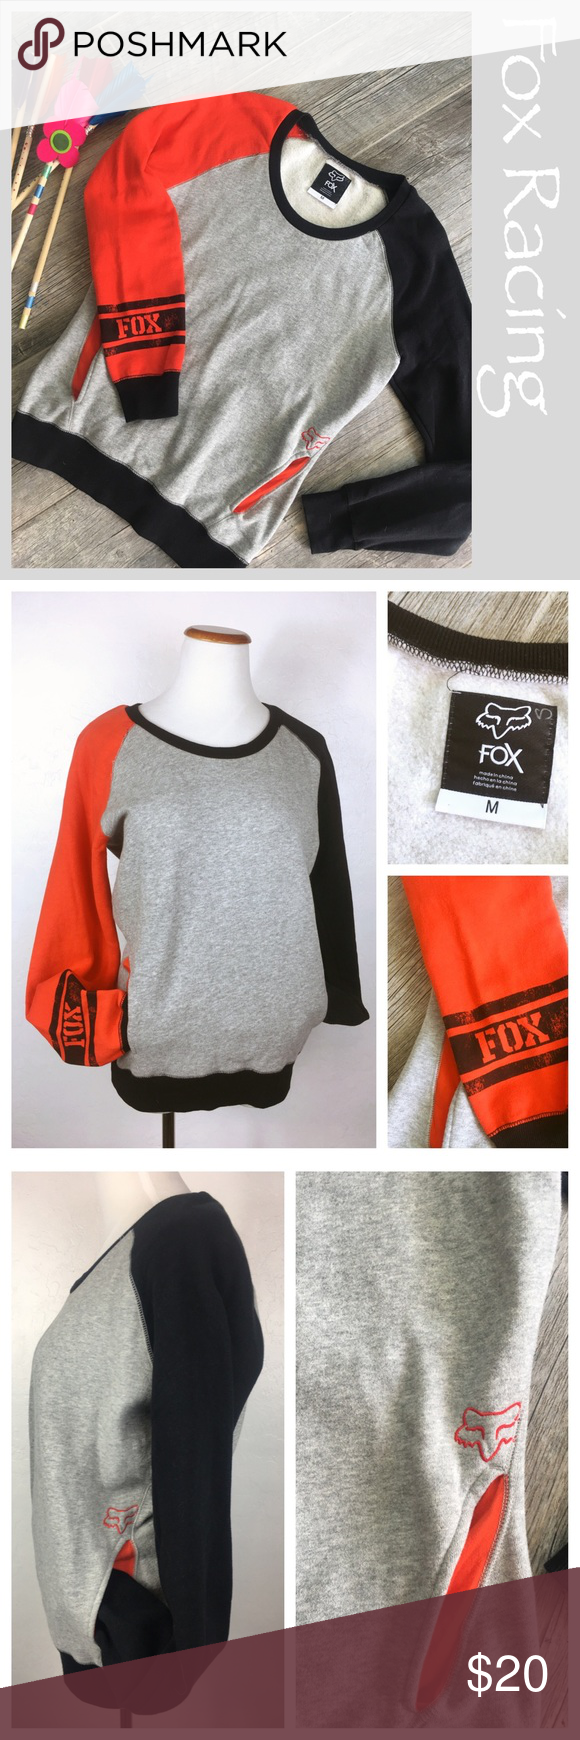 """Fox Racing pullover sweatshirt. FOX Racing pullover sweatshirt. Sleeves are 2 different colors, 2 front pocket details. Small manufacturers defect in stitching near shoulder see pic. Size medium. Preowned but never worn. Measurements: Bust 19.5 """" Shoulder to bottom hem 26"""".   Bundle in my closet and save. I ship same day or next day almost always! No trades. Suggested user and top-rated seller! Thank you for checking out my closet. Fox Tops Sweatshirts & Hoodies"""